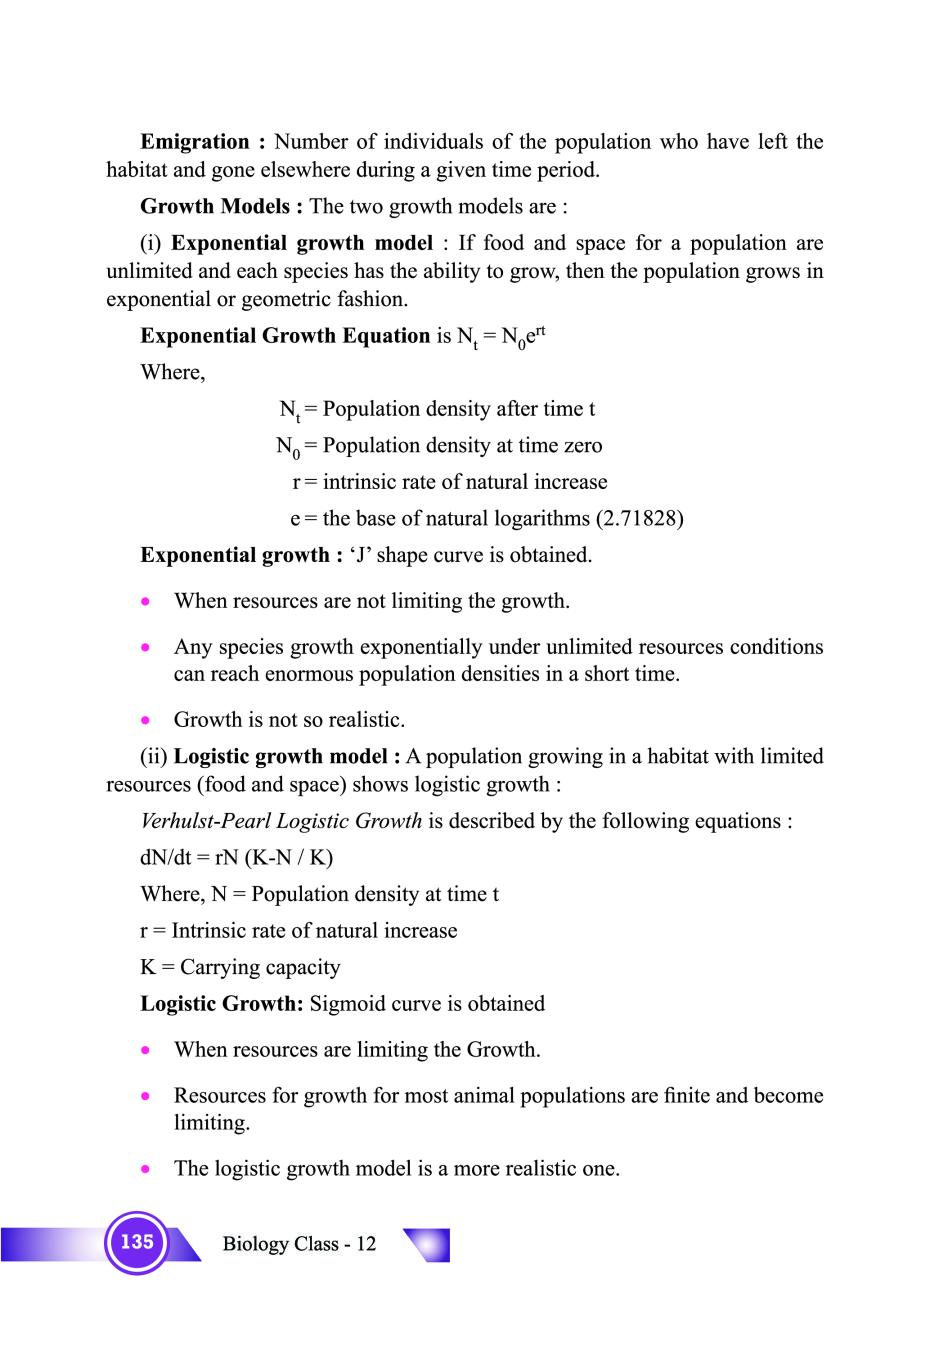 Class 12 Biology Notes for Organisms and Population